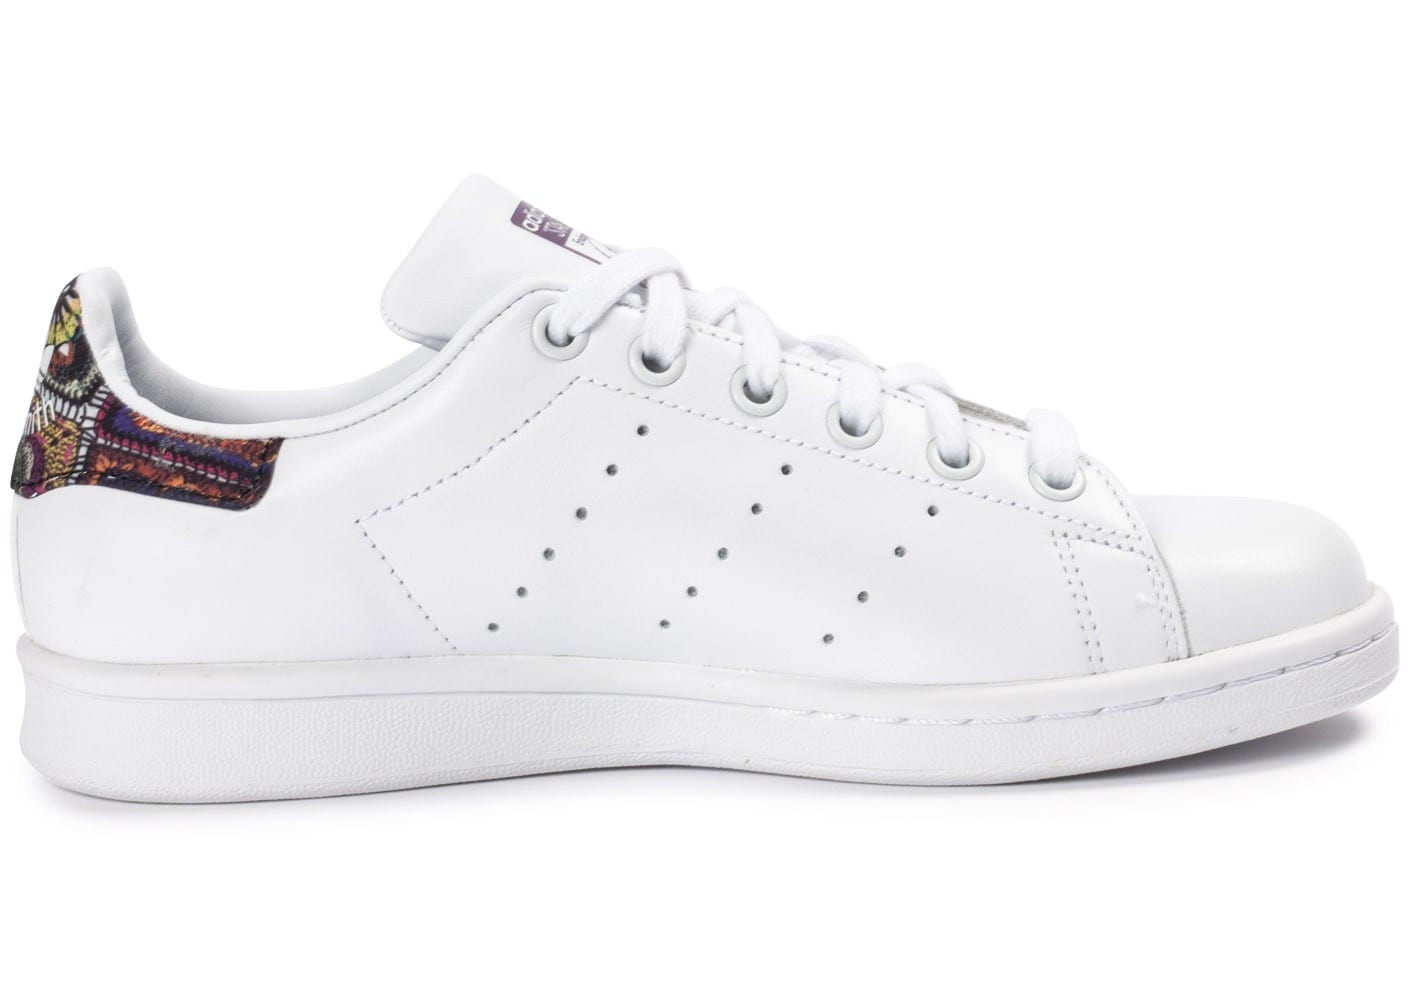 Réduction de prix adidas stan smith femme floral www